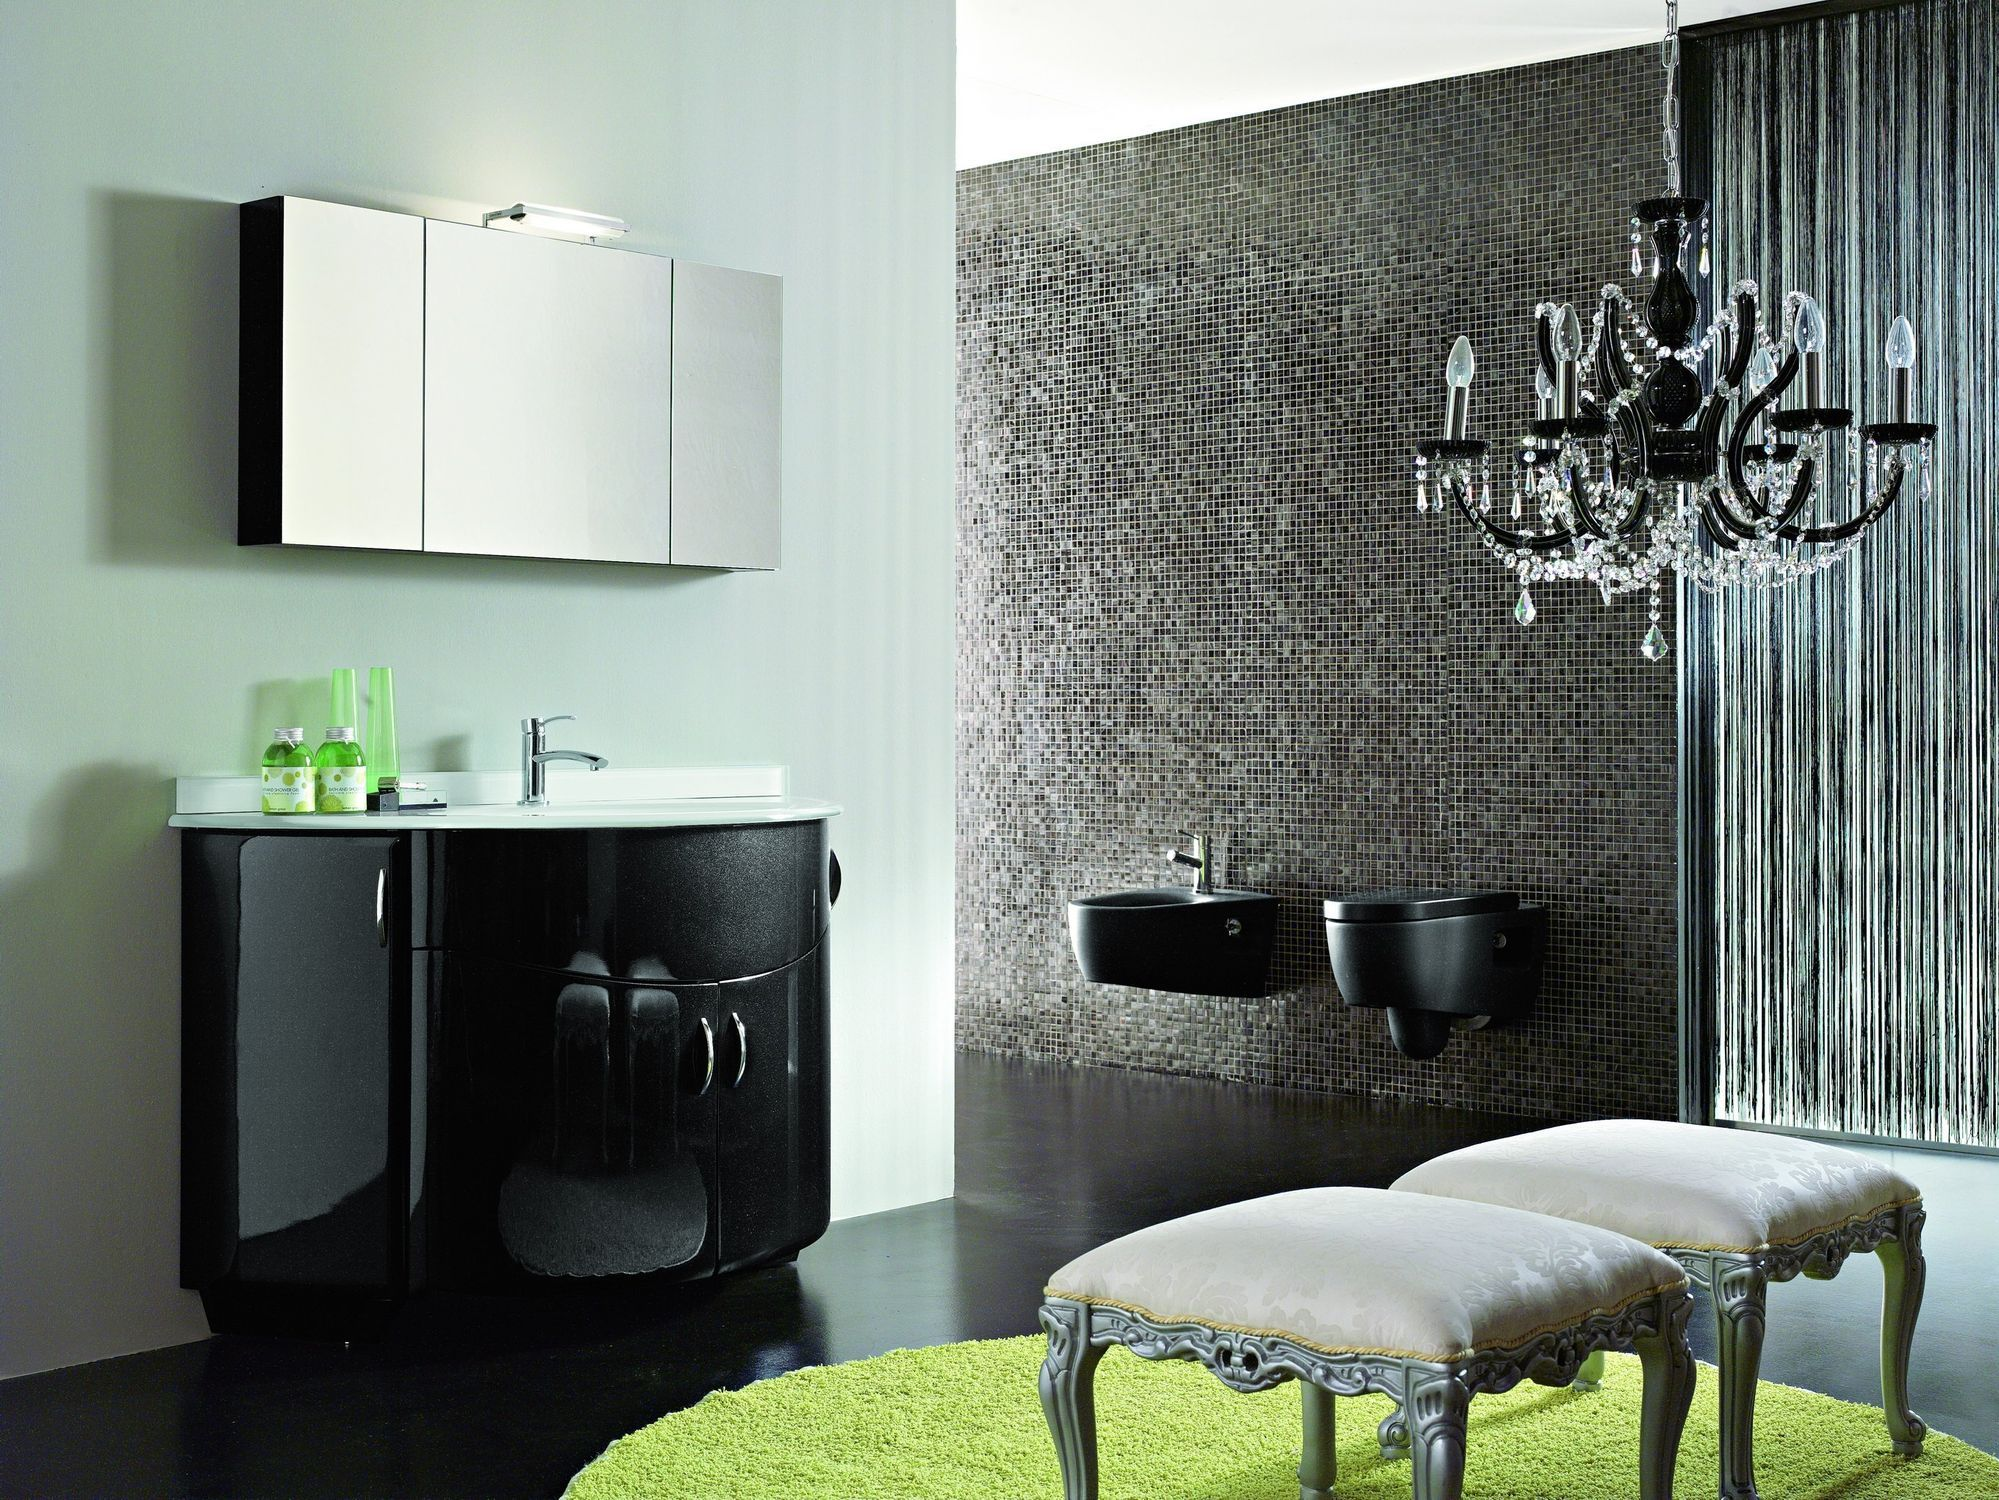 Bathroom Elegant Bathroom Vanity With Linen Tower And Red Wall - Small bathroom tower for small bathroom ideas